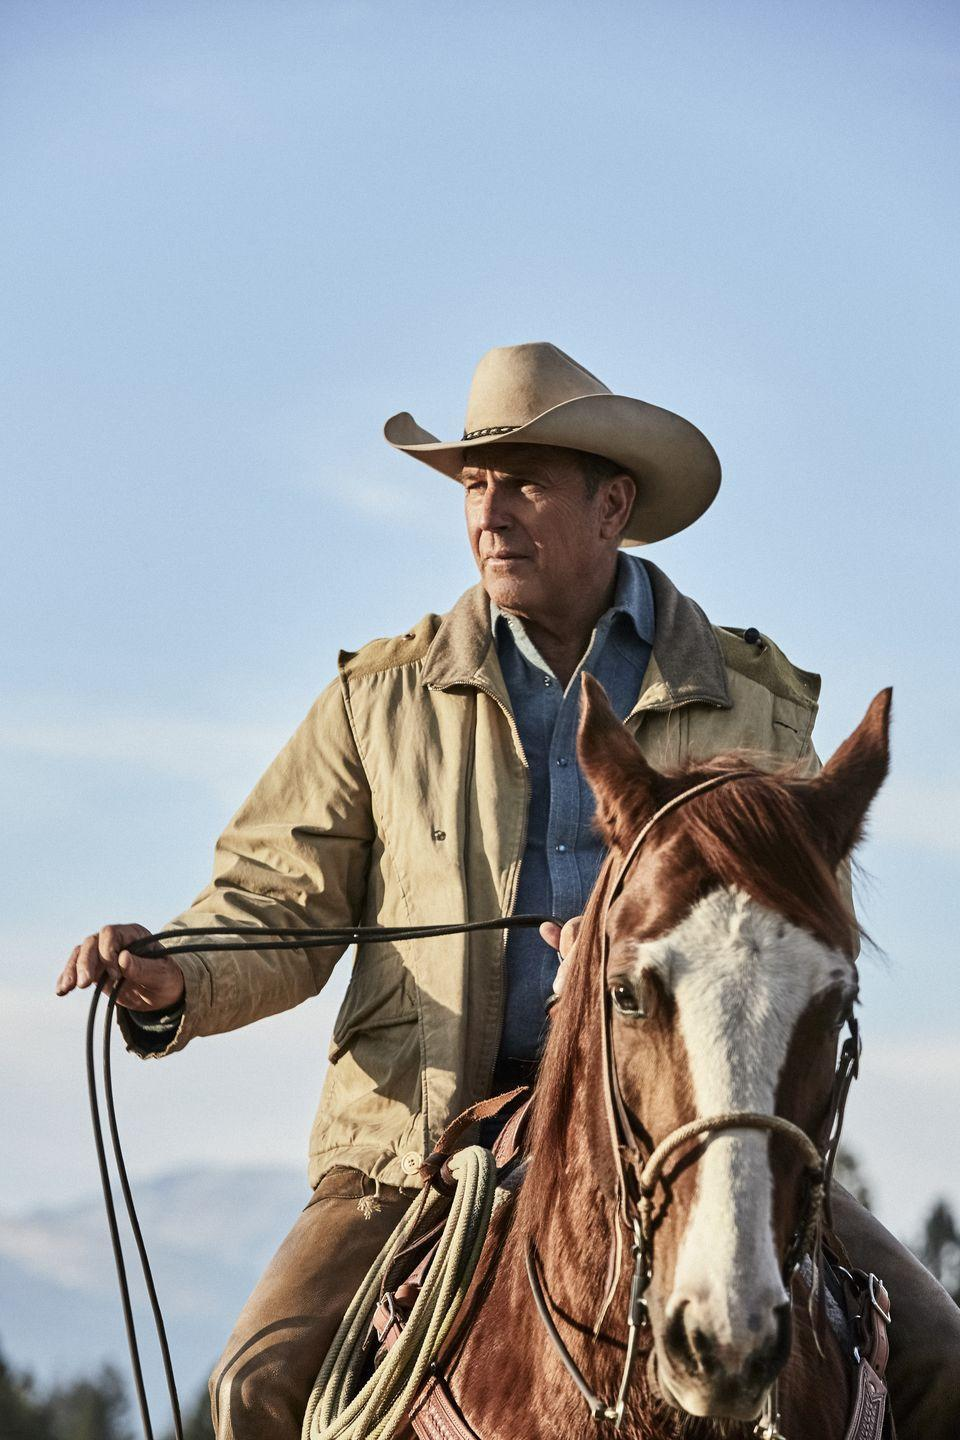 """<p>And here we are back at <em>Yellowstone</em>! Even though there are rumors that Kevin might be leaving in<a href=""""https://www.thepioneerwoman.com/news-entertainment/a33983564/yellowstone-season-4-premiere-cast-news-spoilers/"""" rel=""""nofollow noopener"""" target=""""_blank"""" data-ylk=""""slk:the next season"""" class=""""link rapid-noclick-resp""""> the next season</a>, we sincerely hope to get more of <a href=""""https://www.thepioneerwoman.com/news-entertainment/g34208760/yellowstone-cast-characters/"""" rel=""""nofollow noopener"""" target=""""_blank"""" data-ylk=""""slk:John and the rest of the Duttons"""" class=""""link rapid-noclick-resp"""">John and the rest of the Duttons</a> at least for a few more years. Only time will tell! Until then, at least we have this photo of him as a cowboy. </p>"""